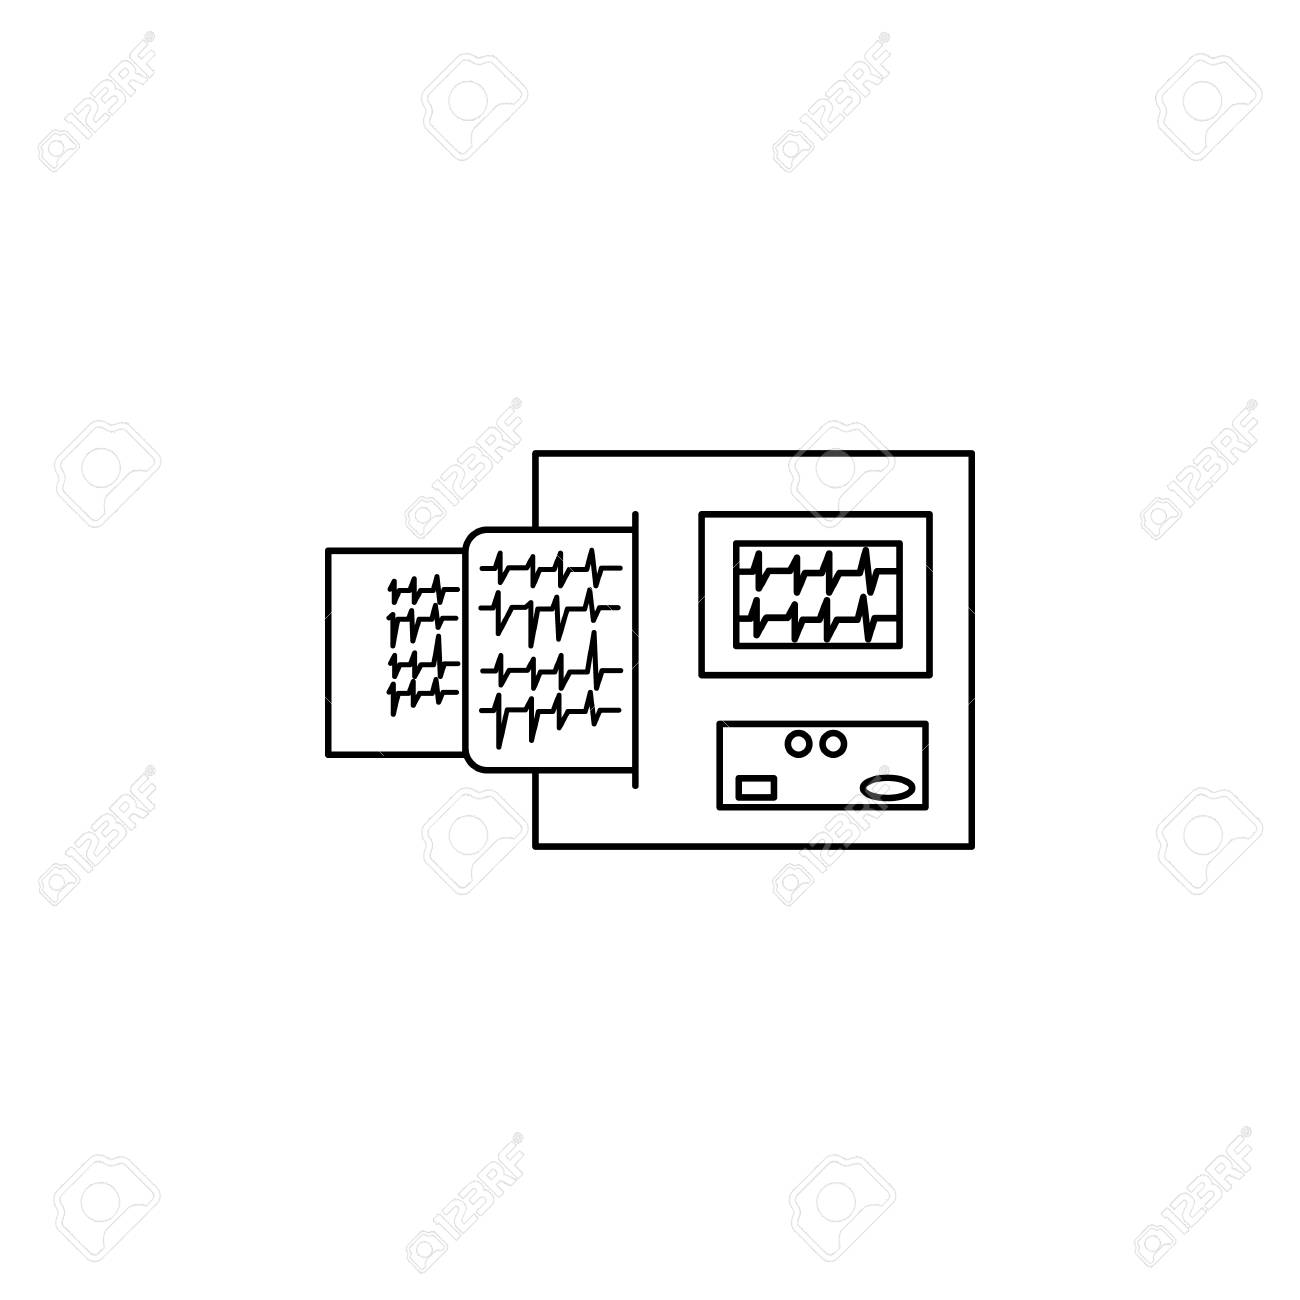 hight resolution of electrocardiogram device and heart pulse on list line icon element of medicine tools icon